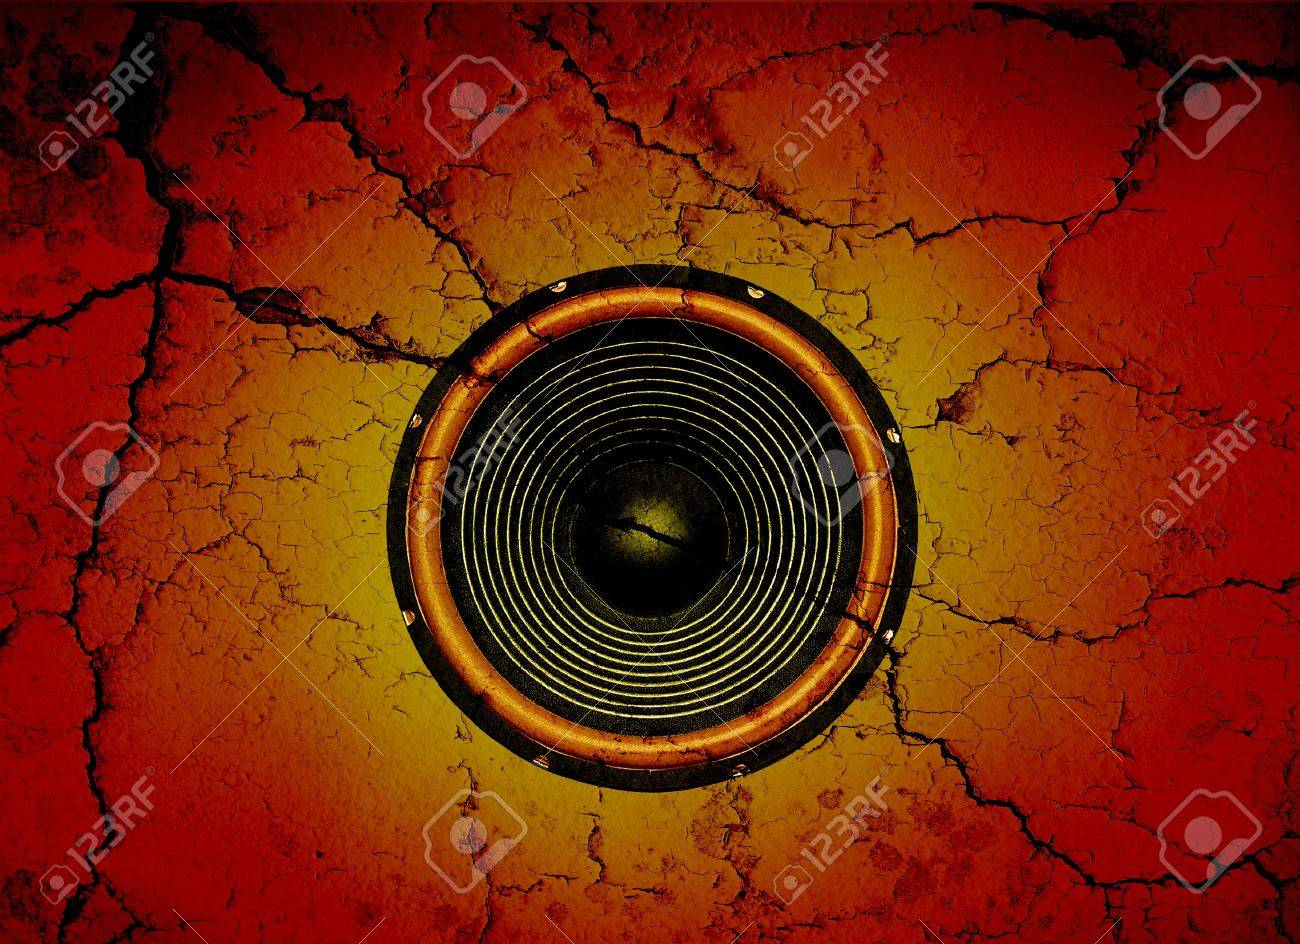 Audio speaker on a cracked wall background - 16239570